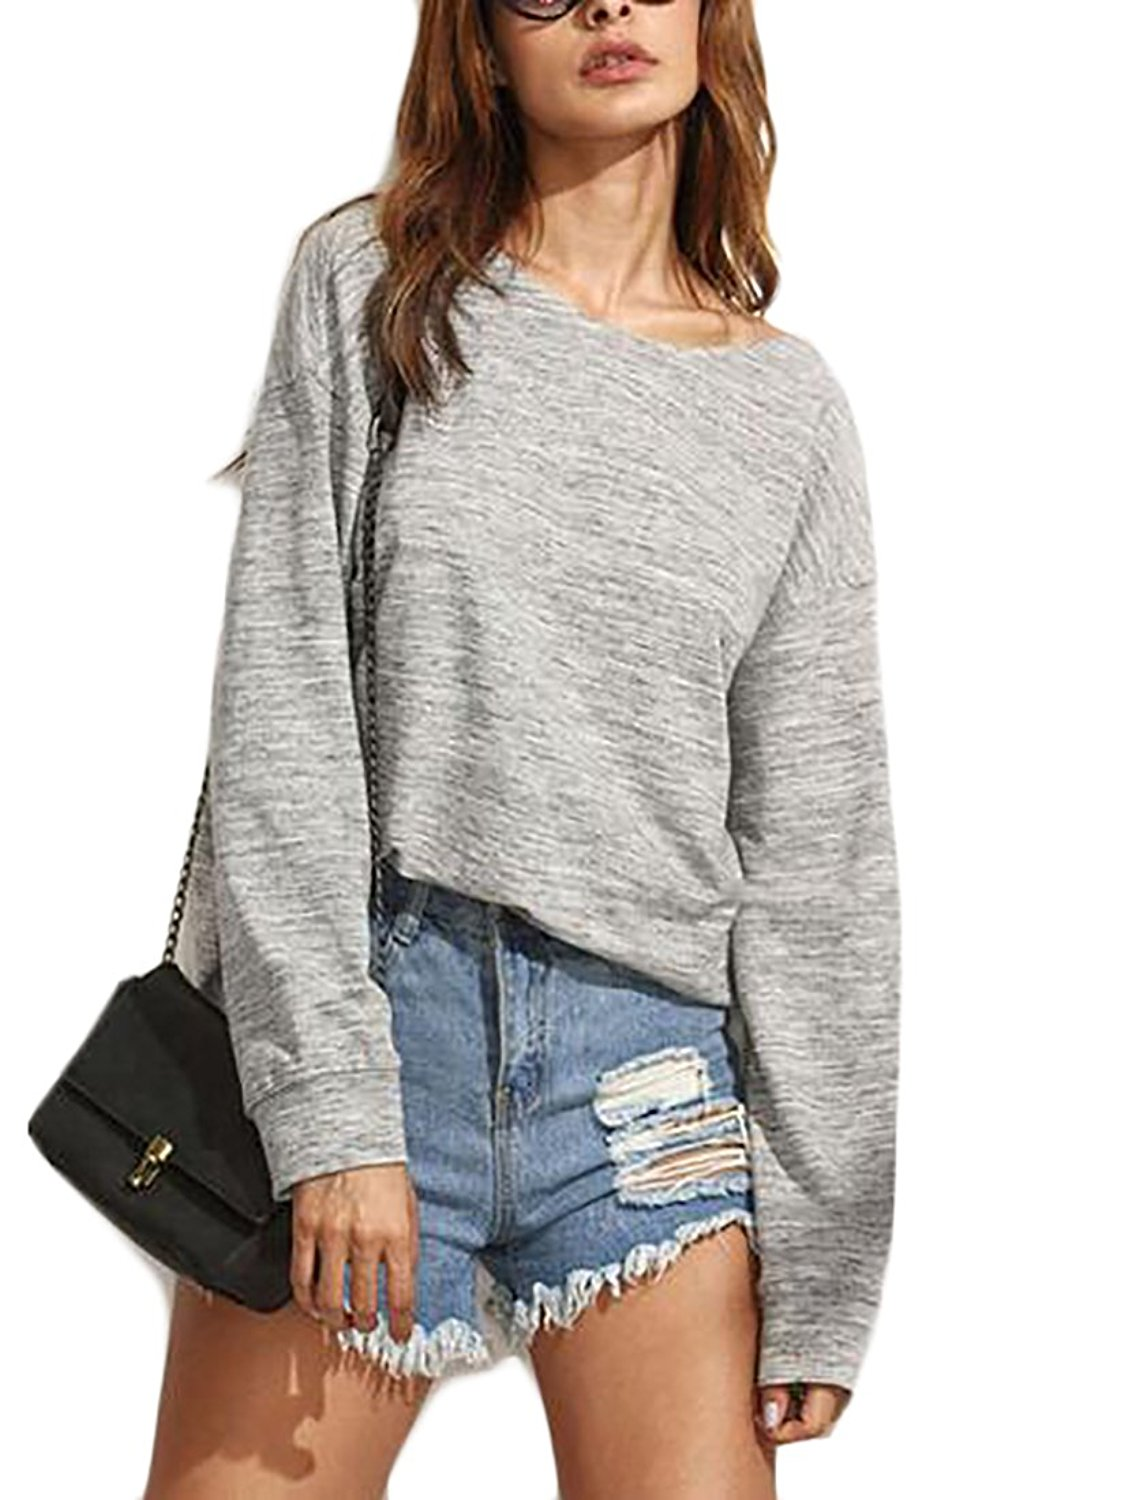 93d28ca81a6 Get Quotations · WSPLYSPJY Women Cut Out Loose Pullover Criss Cross Top Tee  Blouse